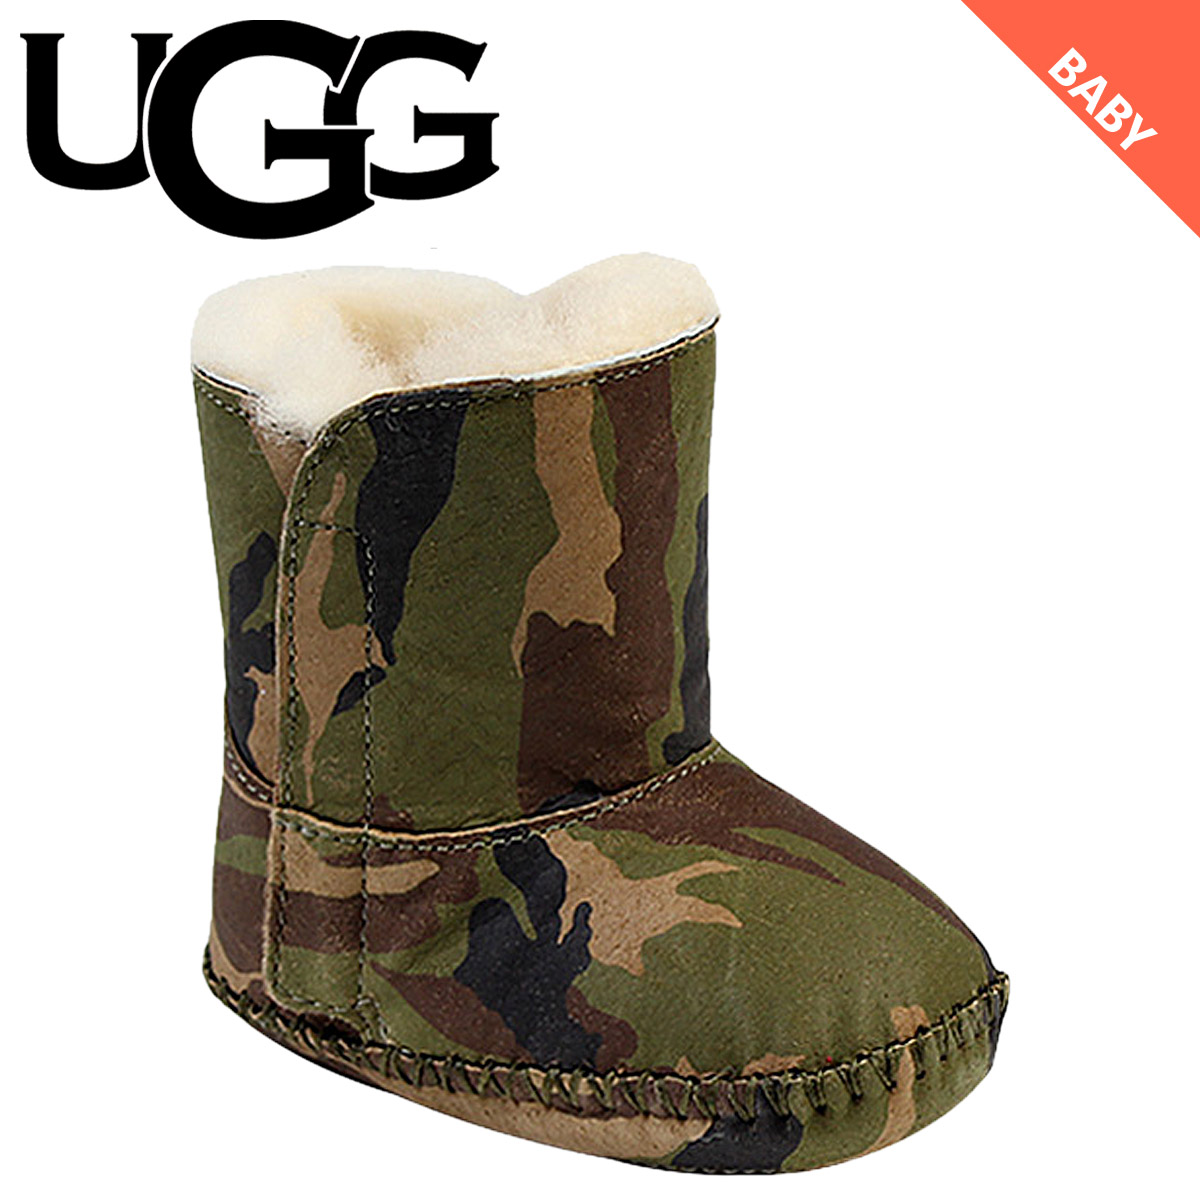 329b8663194 UGG UGG baby Kaden duck boots INFANTS CADEN CAMO 10040931 Sheepskin baby  shoes kids